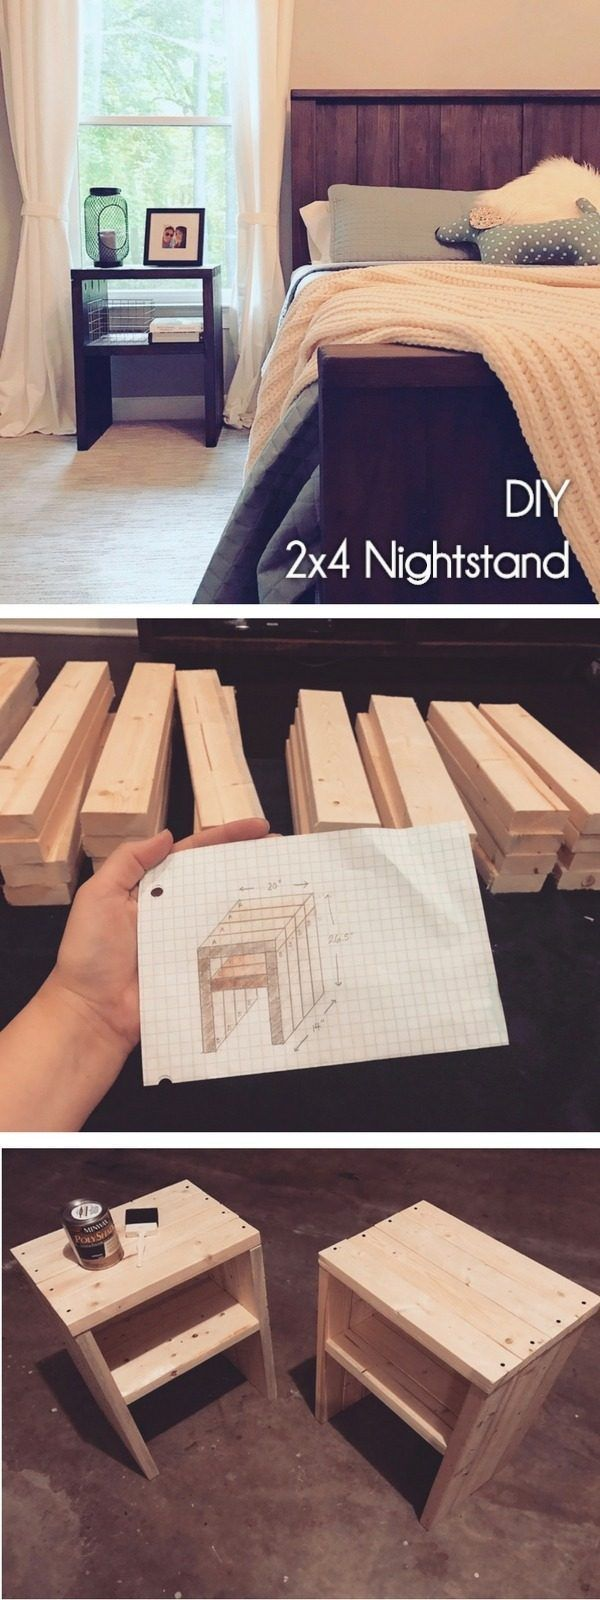 Check out how to make a #DIY #wooden nightstand from 2x4s #HomeDecorIdeas #BedroomDecor @istandarddesign